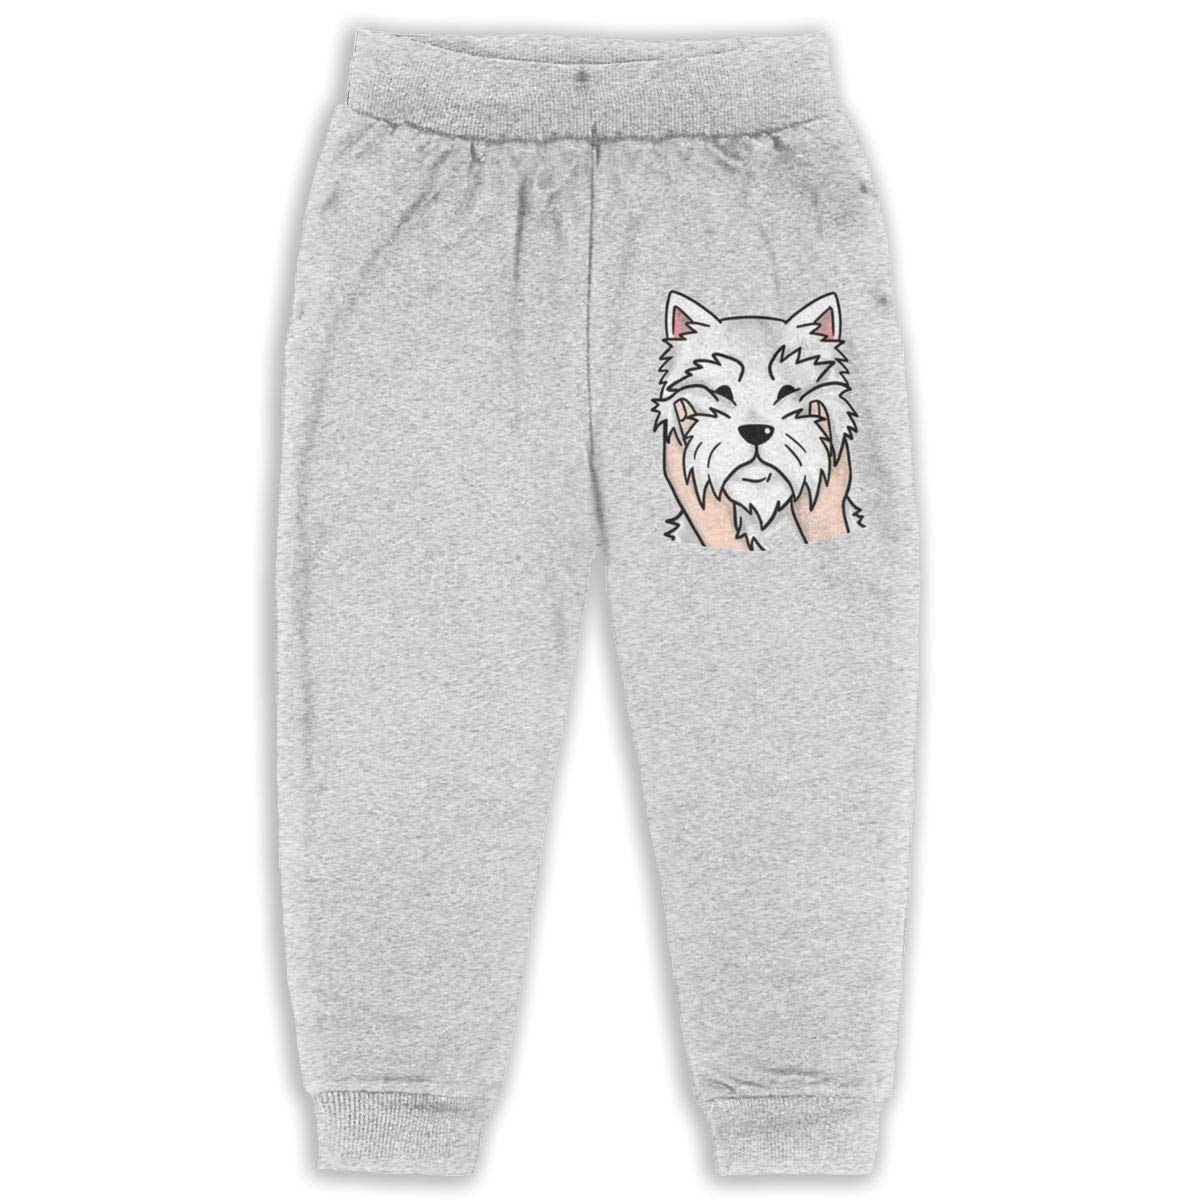 Child GHYNJUM West Highland Terrier Unisex 2-6T Autumn and Winter Cotton Casual Trousers